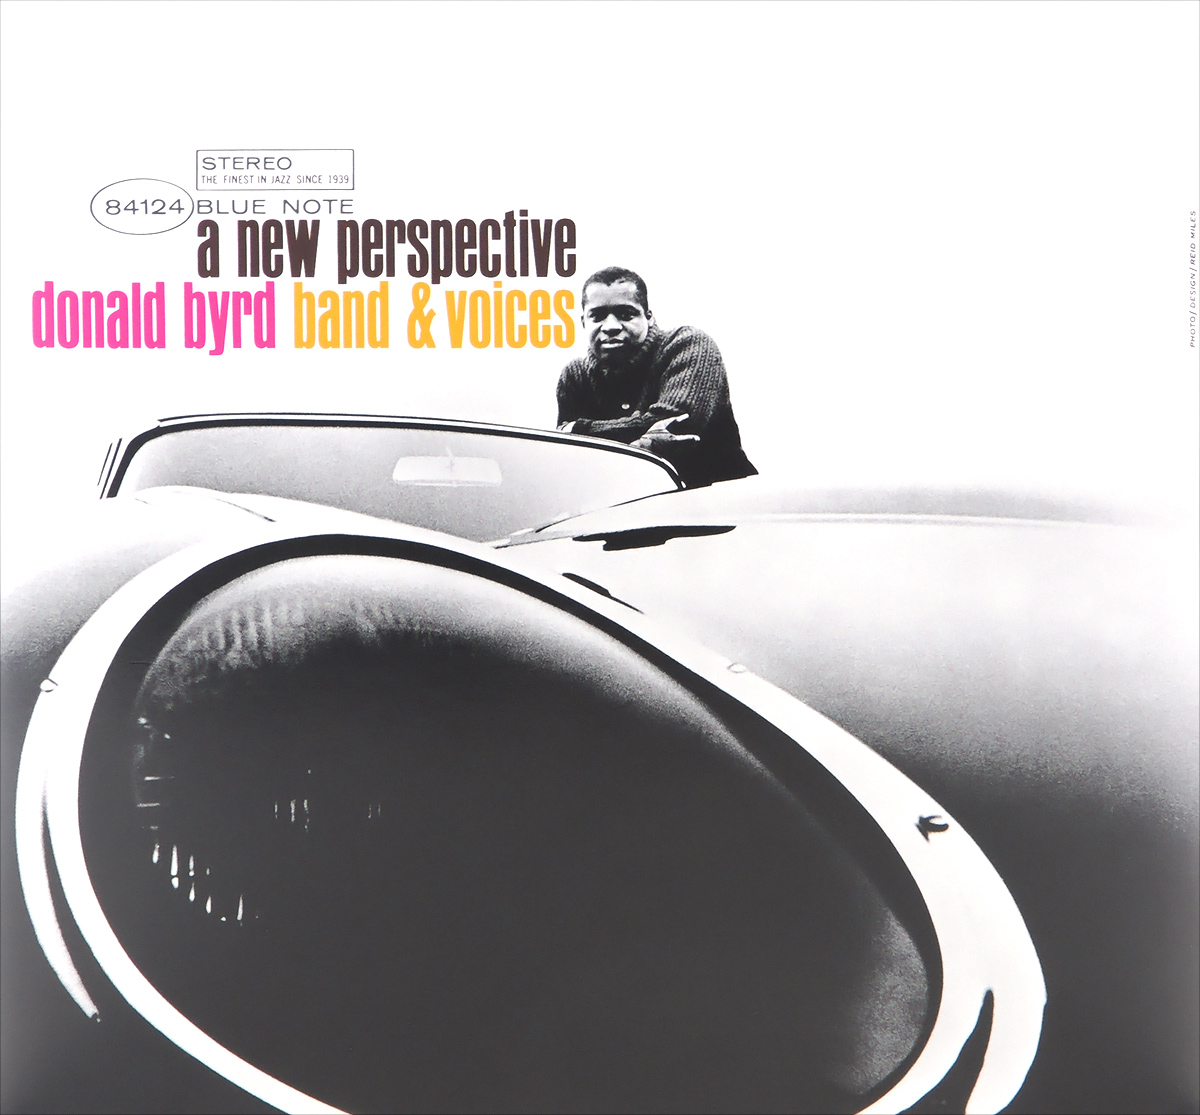 Дональд Берд Donald Byrd. A New Perspective (LP) geely emgrand 7 ec7 ec715 ec718 emgrand7 ec7 rv ec715 rv ec718 rv ec hb car brake main pump assembly